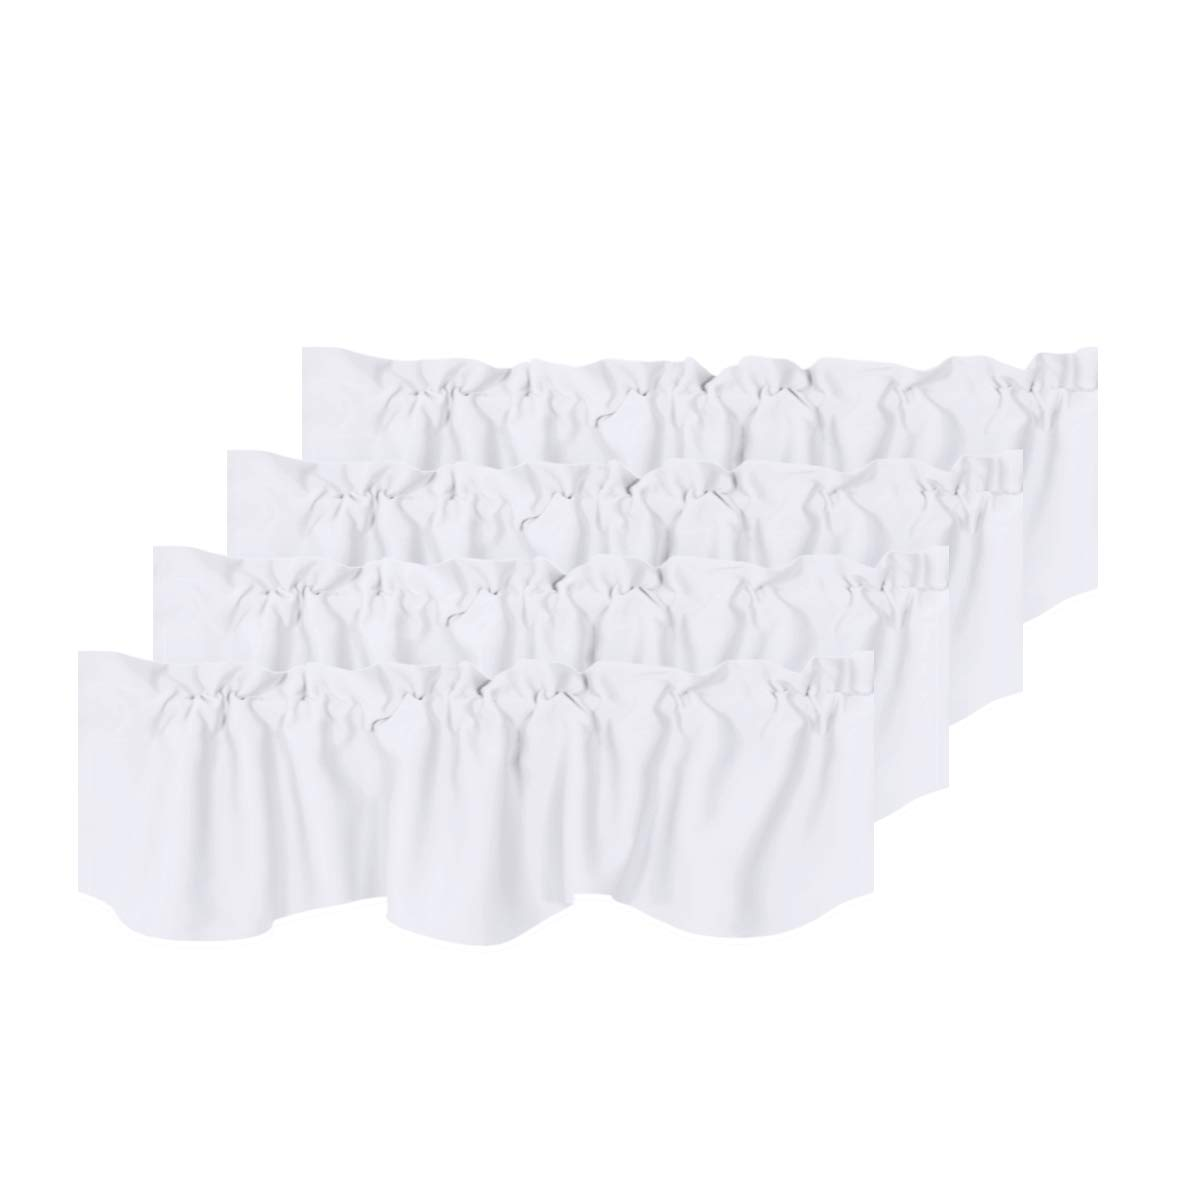 H.VERSAILTEX Privacy Protection Kitchen Valances for Windows Room Darkening Curtain Valances for Bedroom, Rod Pocket Top, 4 Pack, Pure White, 52 x 18 Inch